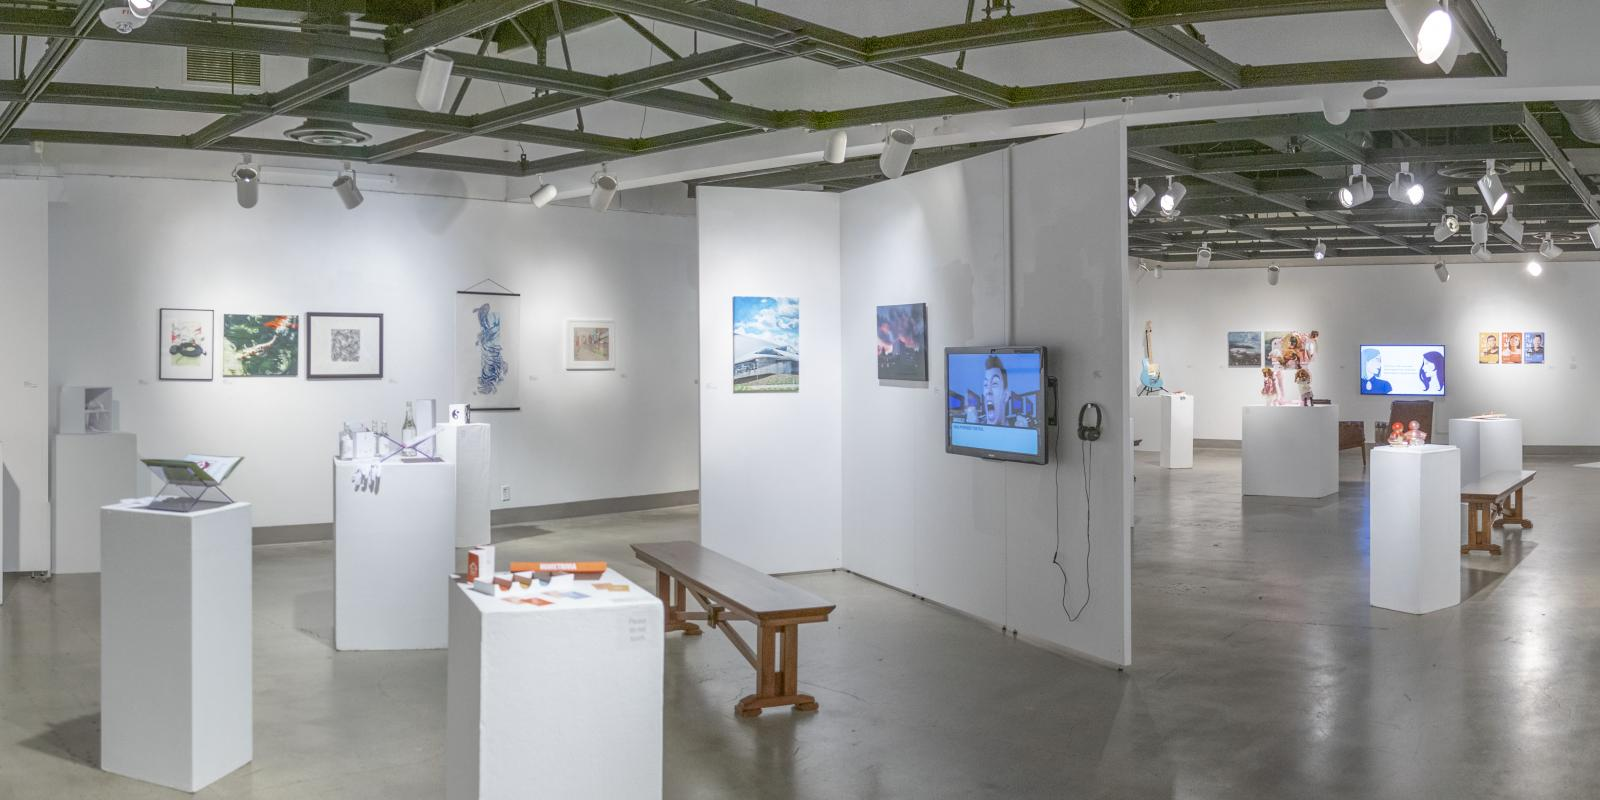 Back of gallery, Exhibition: PolyKroma 2019, Apr.27, 2019 to May 19, 2019, Co-curated by Michele Cairella Fillmore & Sooyun Im, W. Keith & Janet Kellogg Art Gallery, Cal Poly Pomona.